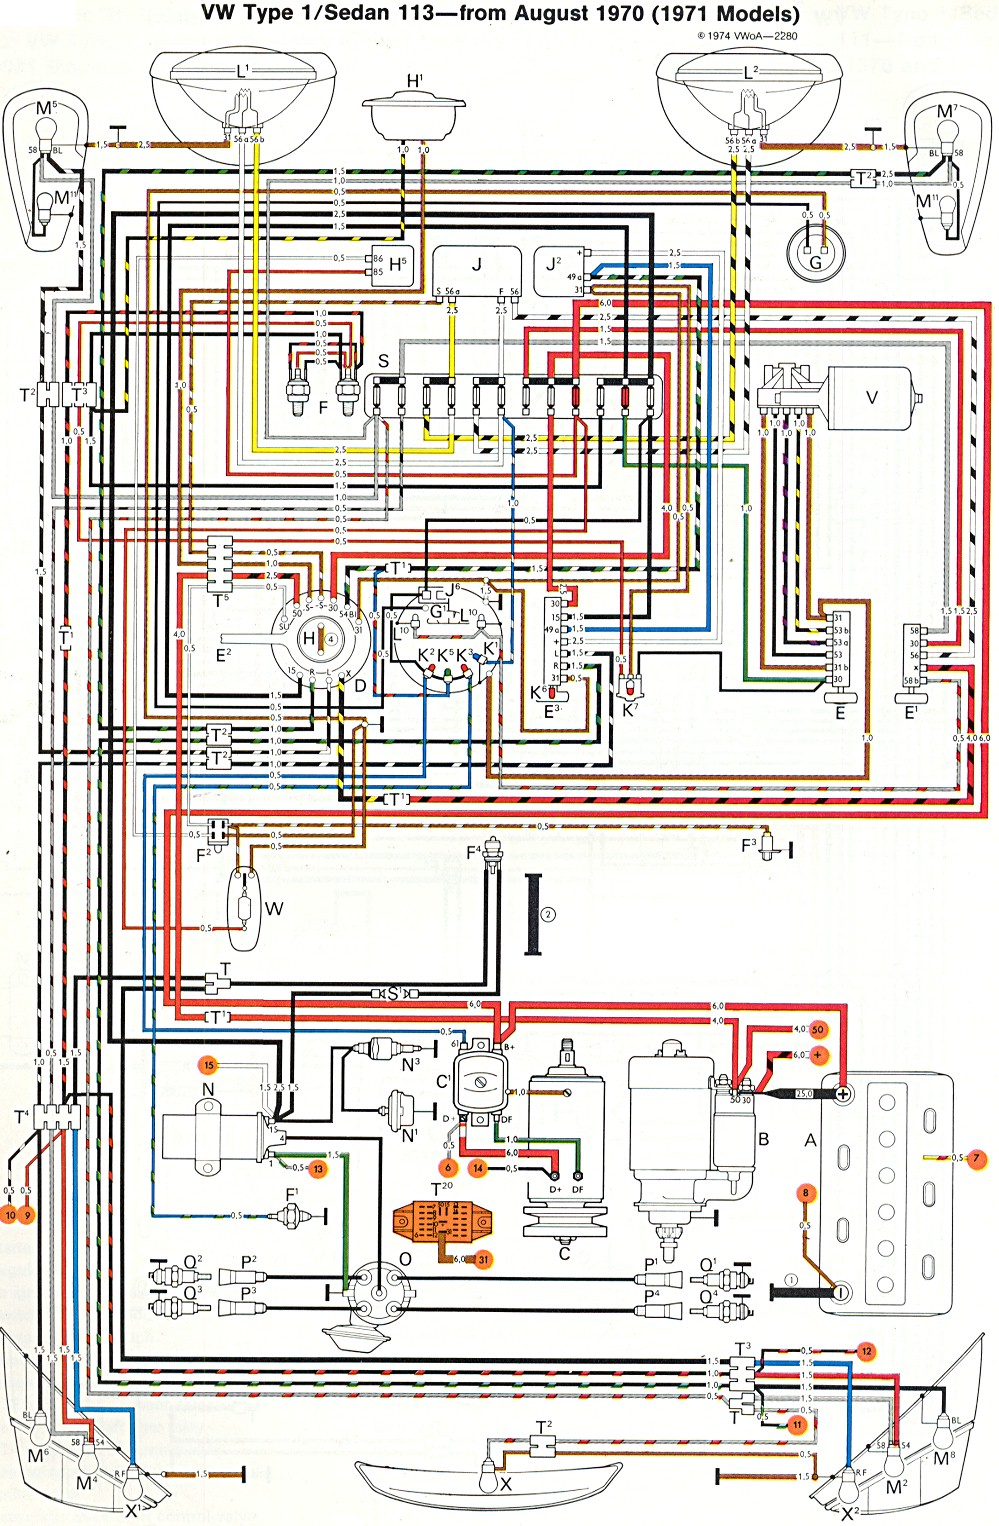 bug_super_71 1971 super beetle wiring diagram thegoldenbug com 1957 vw bug wiring diagram at soozxer.org